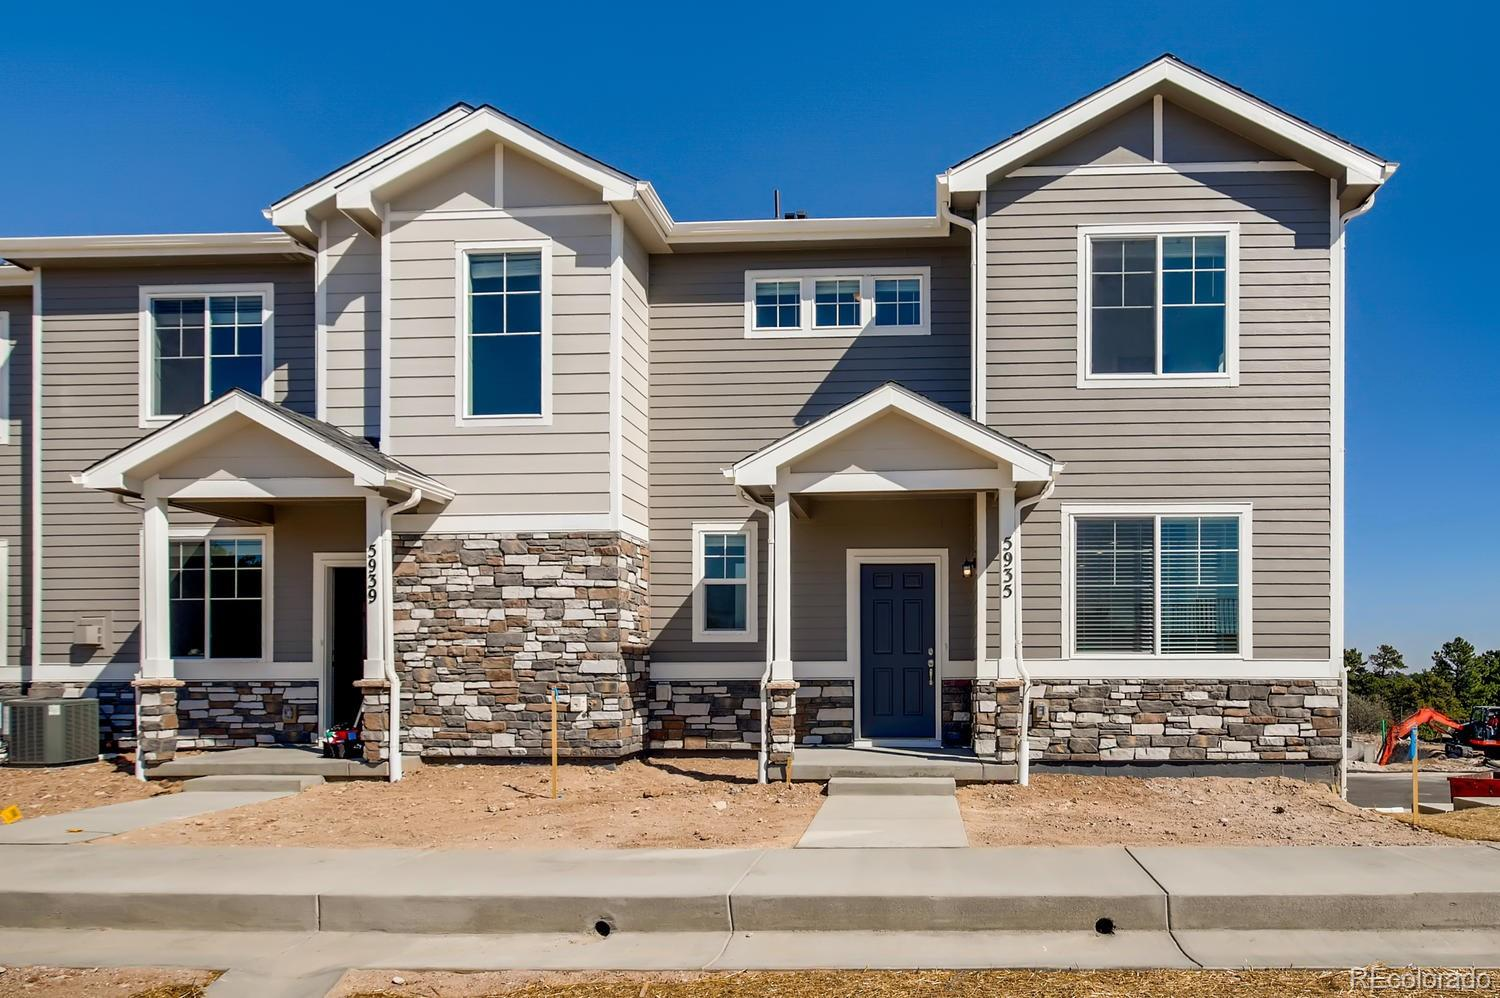 """Luxury Townhome in the heart of Castlerock with an April/May 2021 completion! The beautiful Adderbrooke is a 2 bed, 2.5 bath, with oversized attached 2 car garage. Kitchen includes stainless steel appliances, granite countertops, gas range, dishwasher, and built-in microwave.  Open floorplan with spacious living area and fireplace, upgraded chef's style kitchen with upgraded cabinets, dining space, and is perfect for entertaining.  Both bedrooms have en-suite bathrooms providing privacy and making it a great roommate layout.  Upstairs laundry conveniently located near both bedrooms, and loft area makes for a cozy office space.  Includes energy-efficient furnace, A/C, tankless water heater, and 2"""" white blinds. Right outside your back door, you can enjoy miles of walking trails through the beautiful scenery of the nature filled canyons. Don't miss out on living at The Enclave, just moments away from major highways, shopping, dining, award winning Douglas County Schools, and multiple outdoor activities!"""